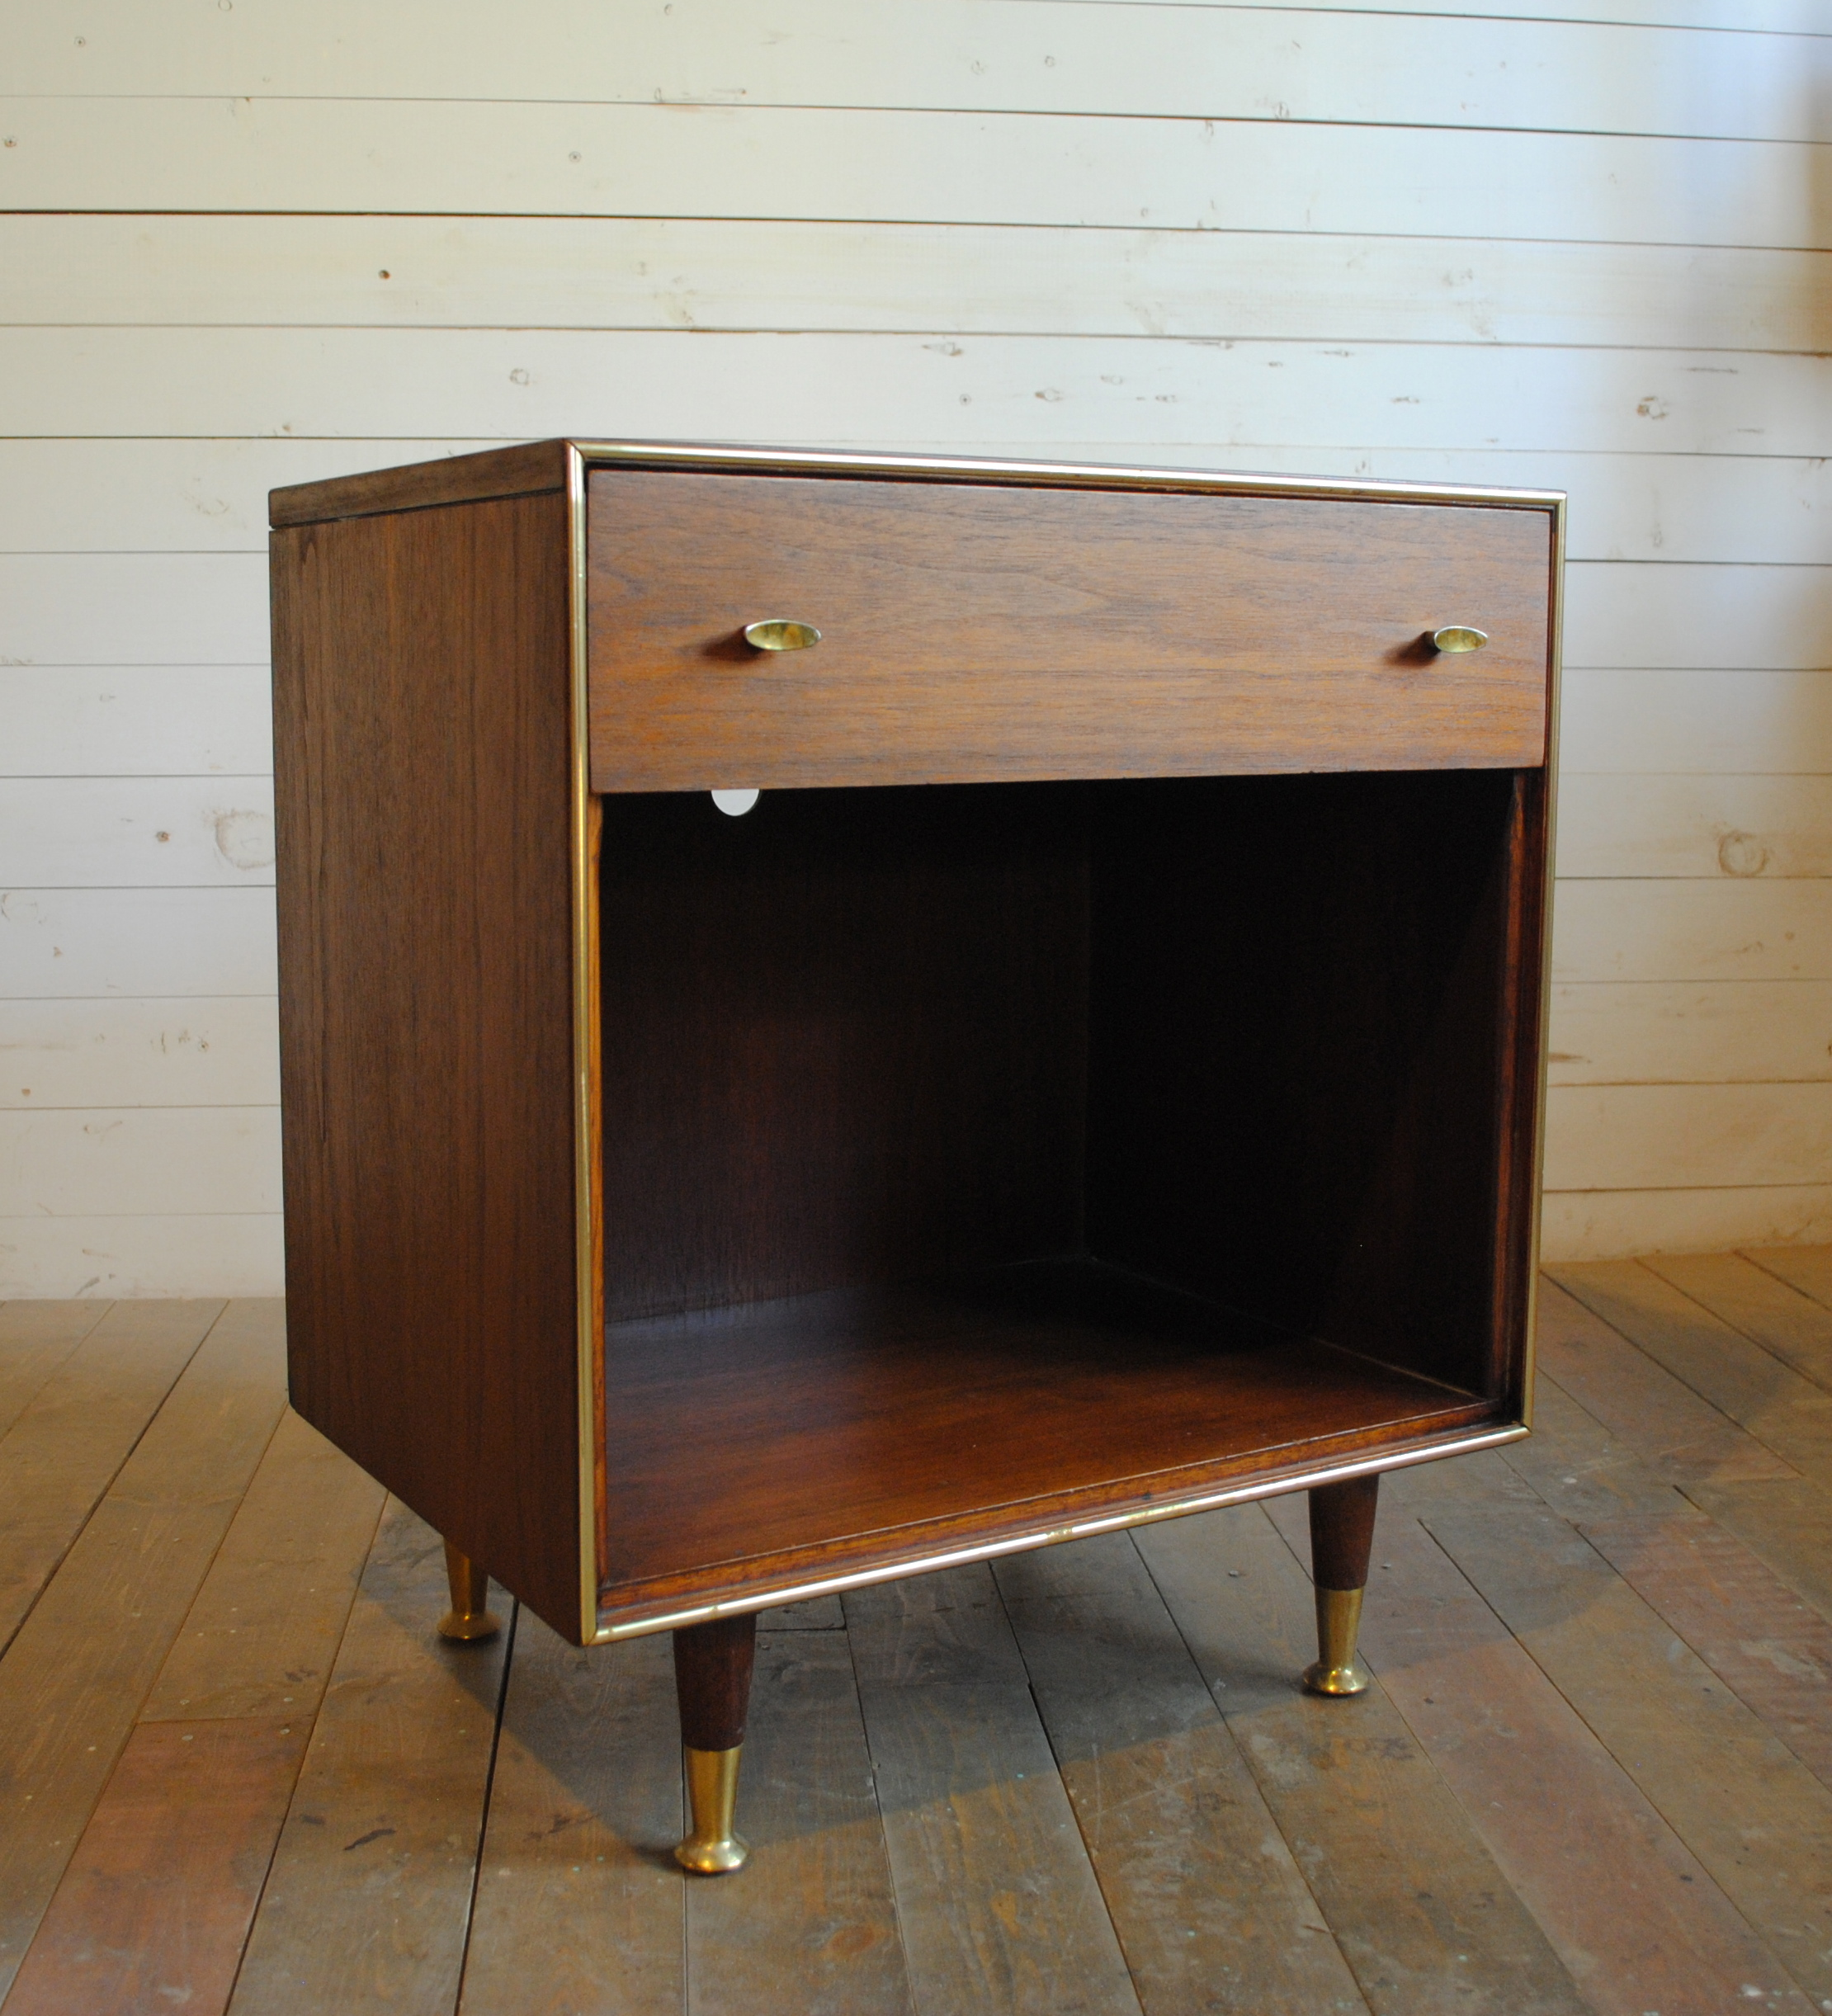 Beautiful Mid Century Walnut End Table / Nightstand By Rway. Perfect For Record  Storage. Dimensions Are 21u2033W X 15u2033D X 24.25u2033H (space Below Drawer Is 19u2033W X  ...